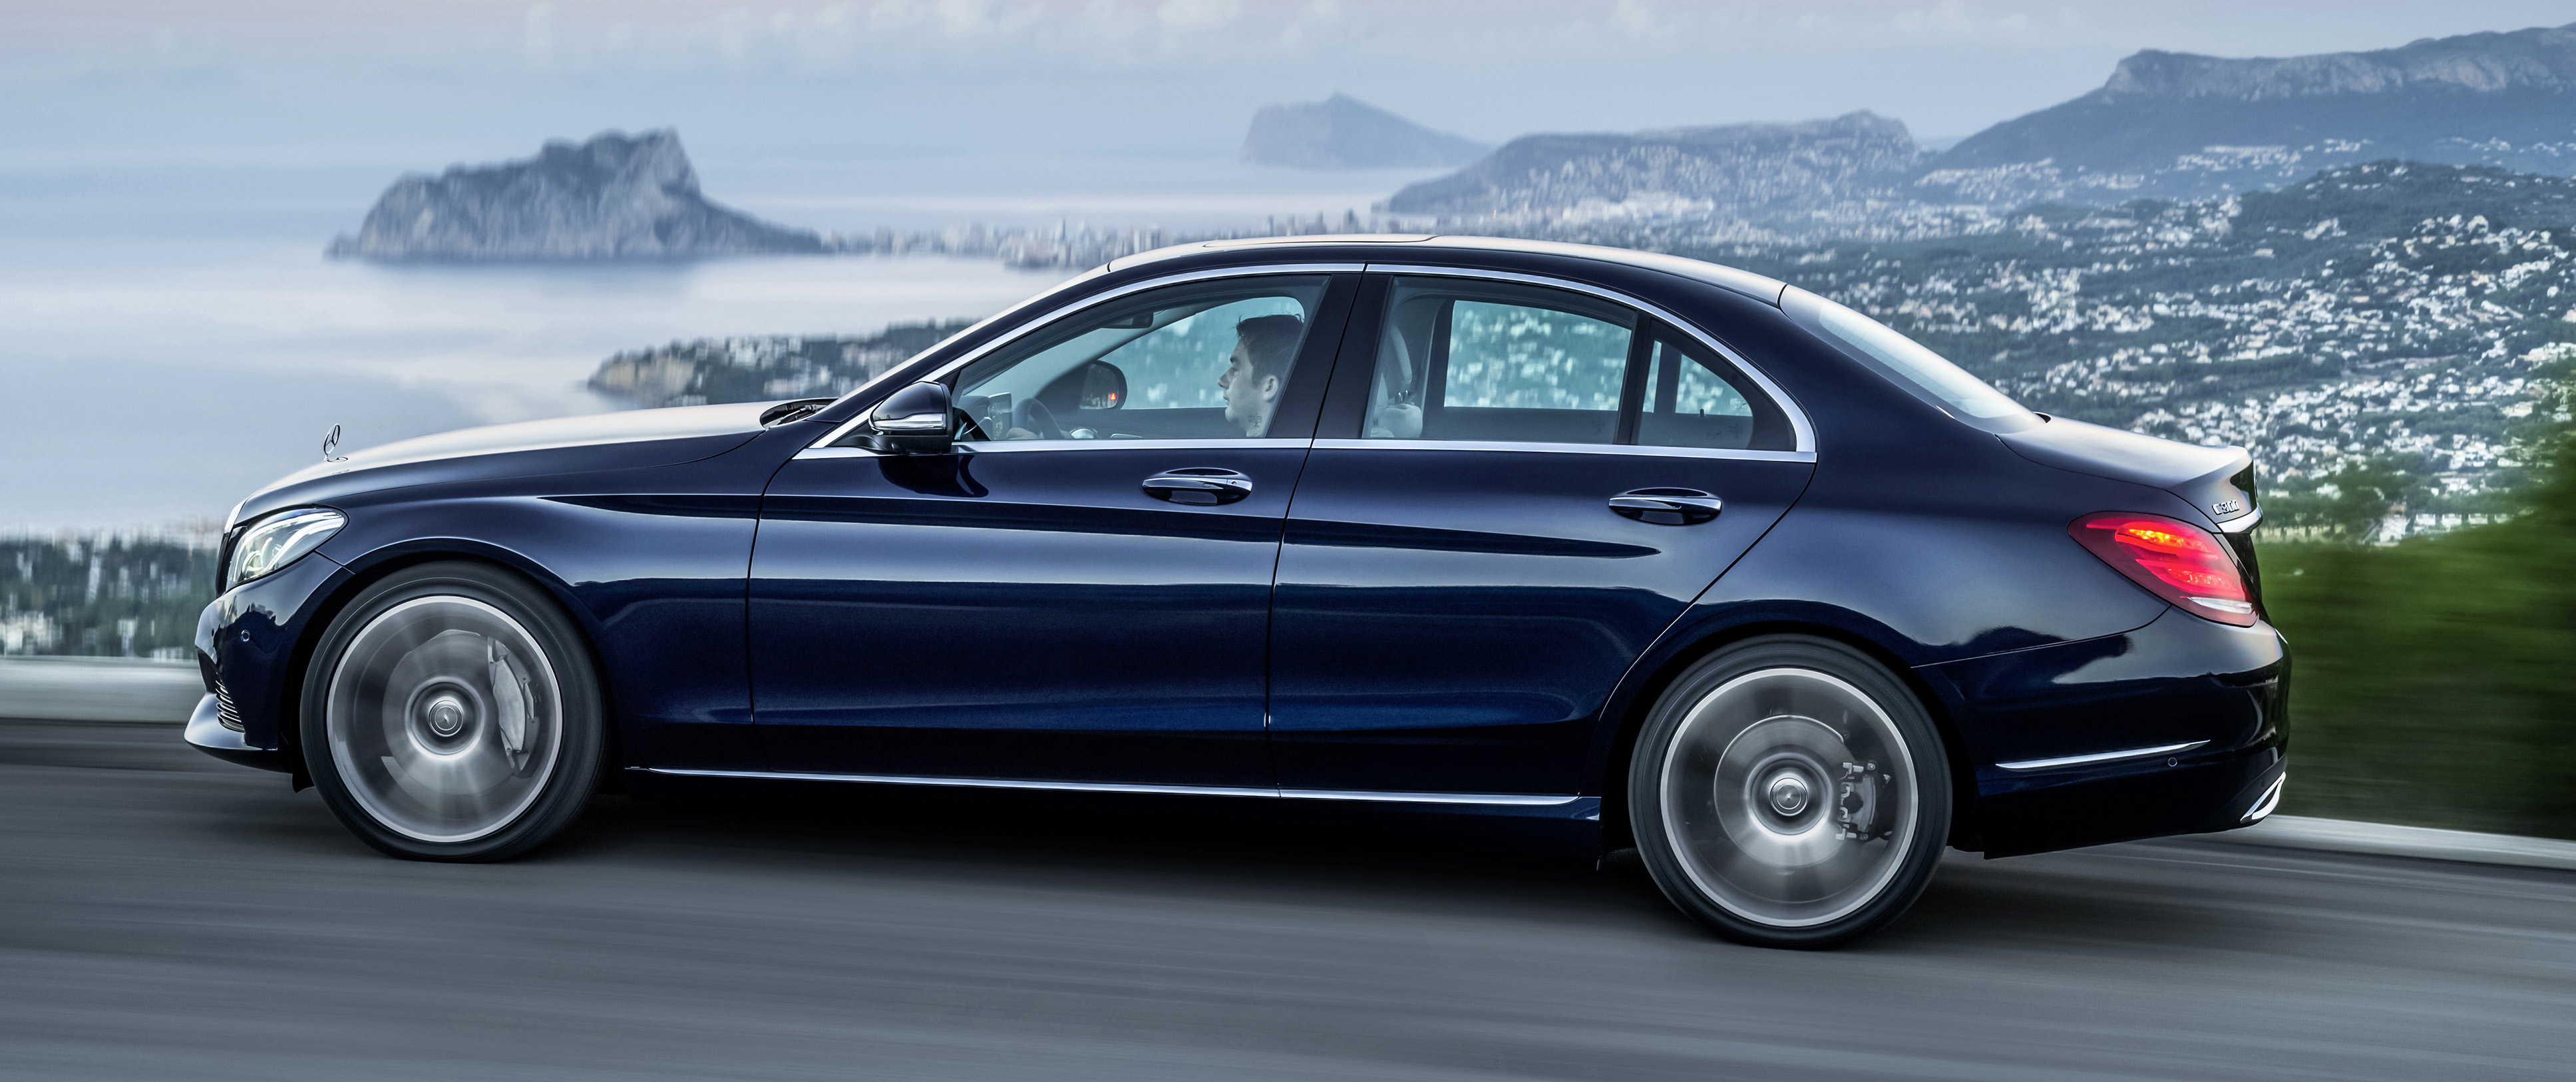 W205 Mercedes-Benz C-Class: first details released! Image 217639